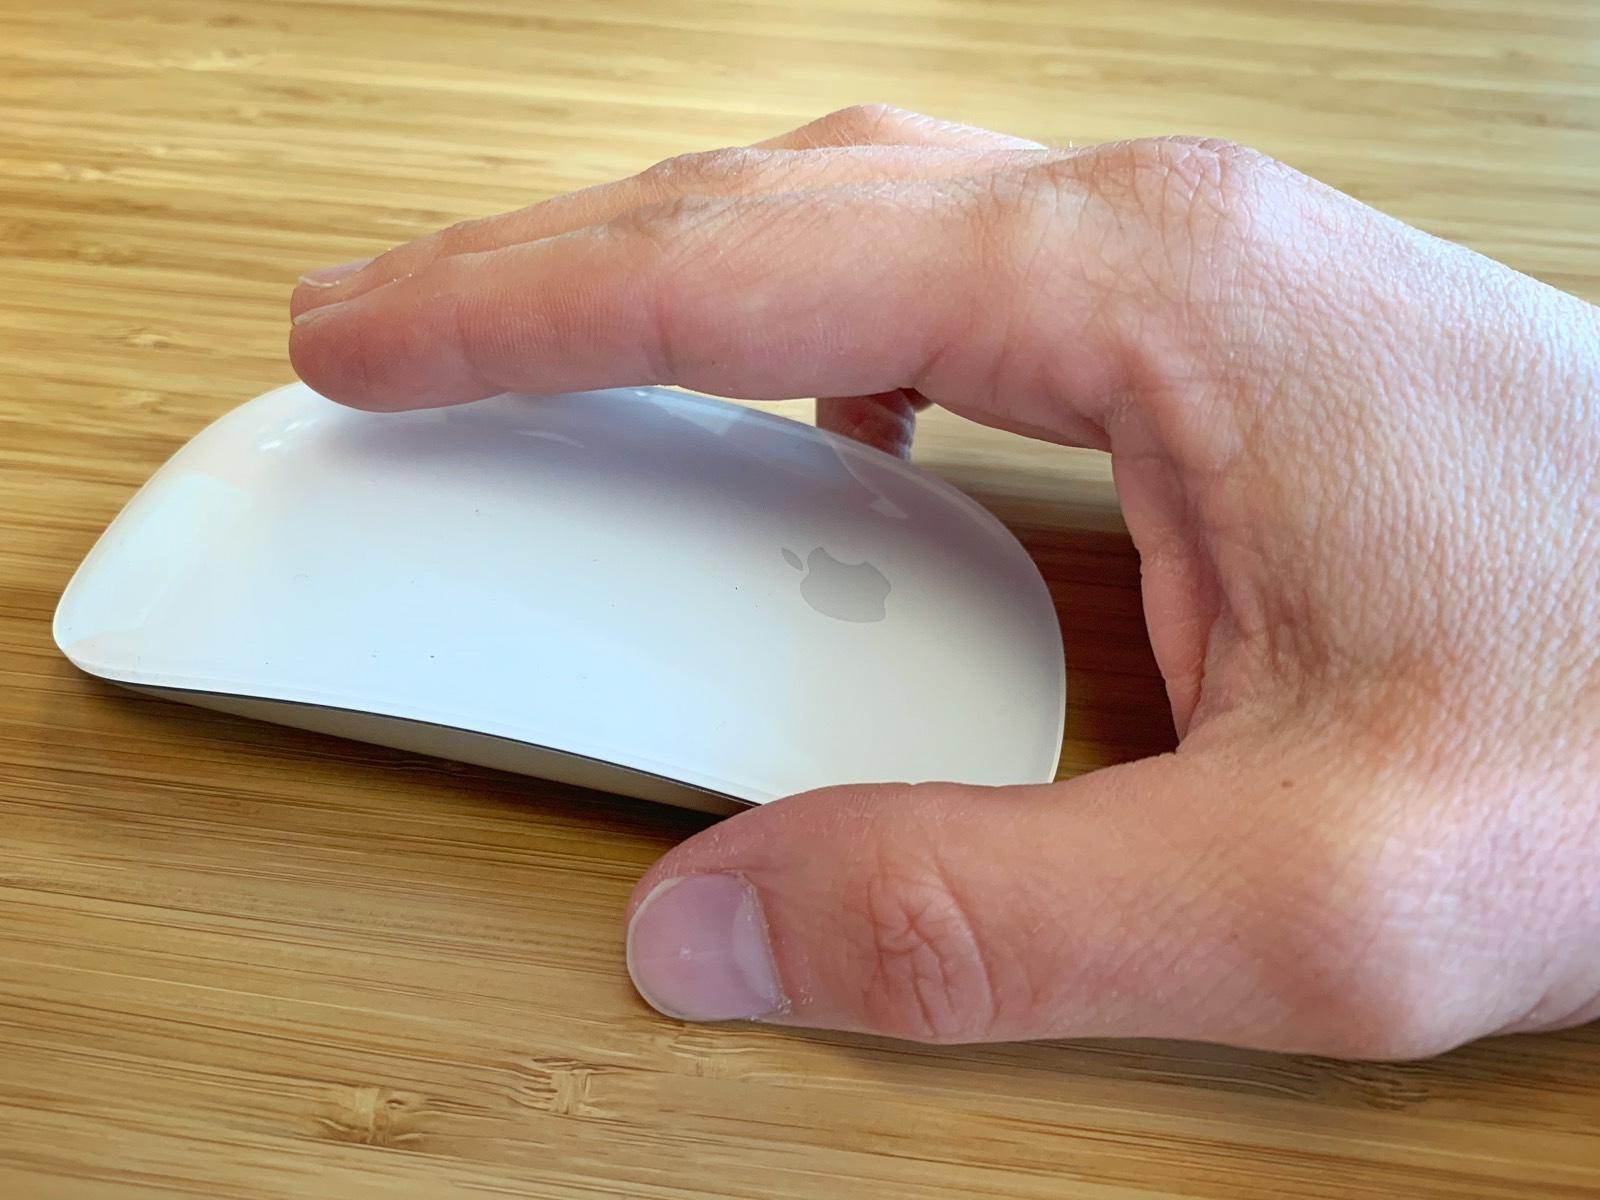 Apple iPad to get mouse support